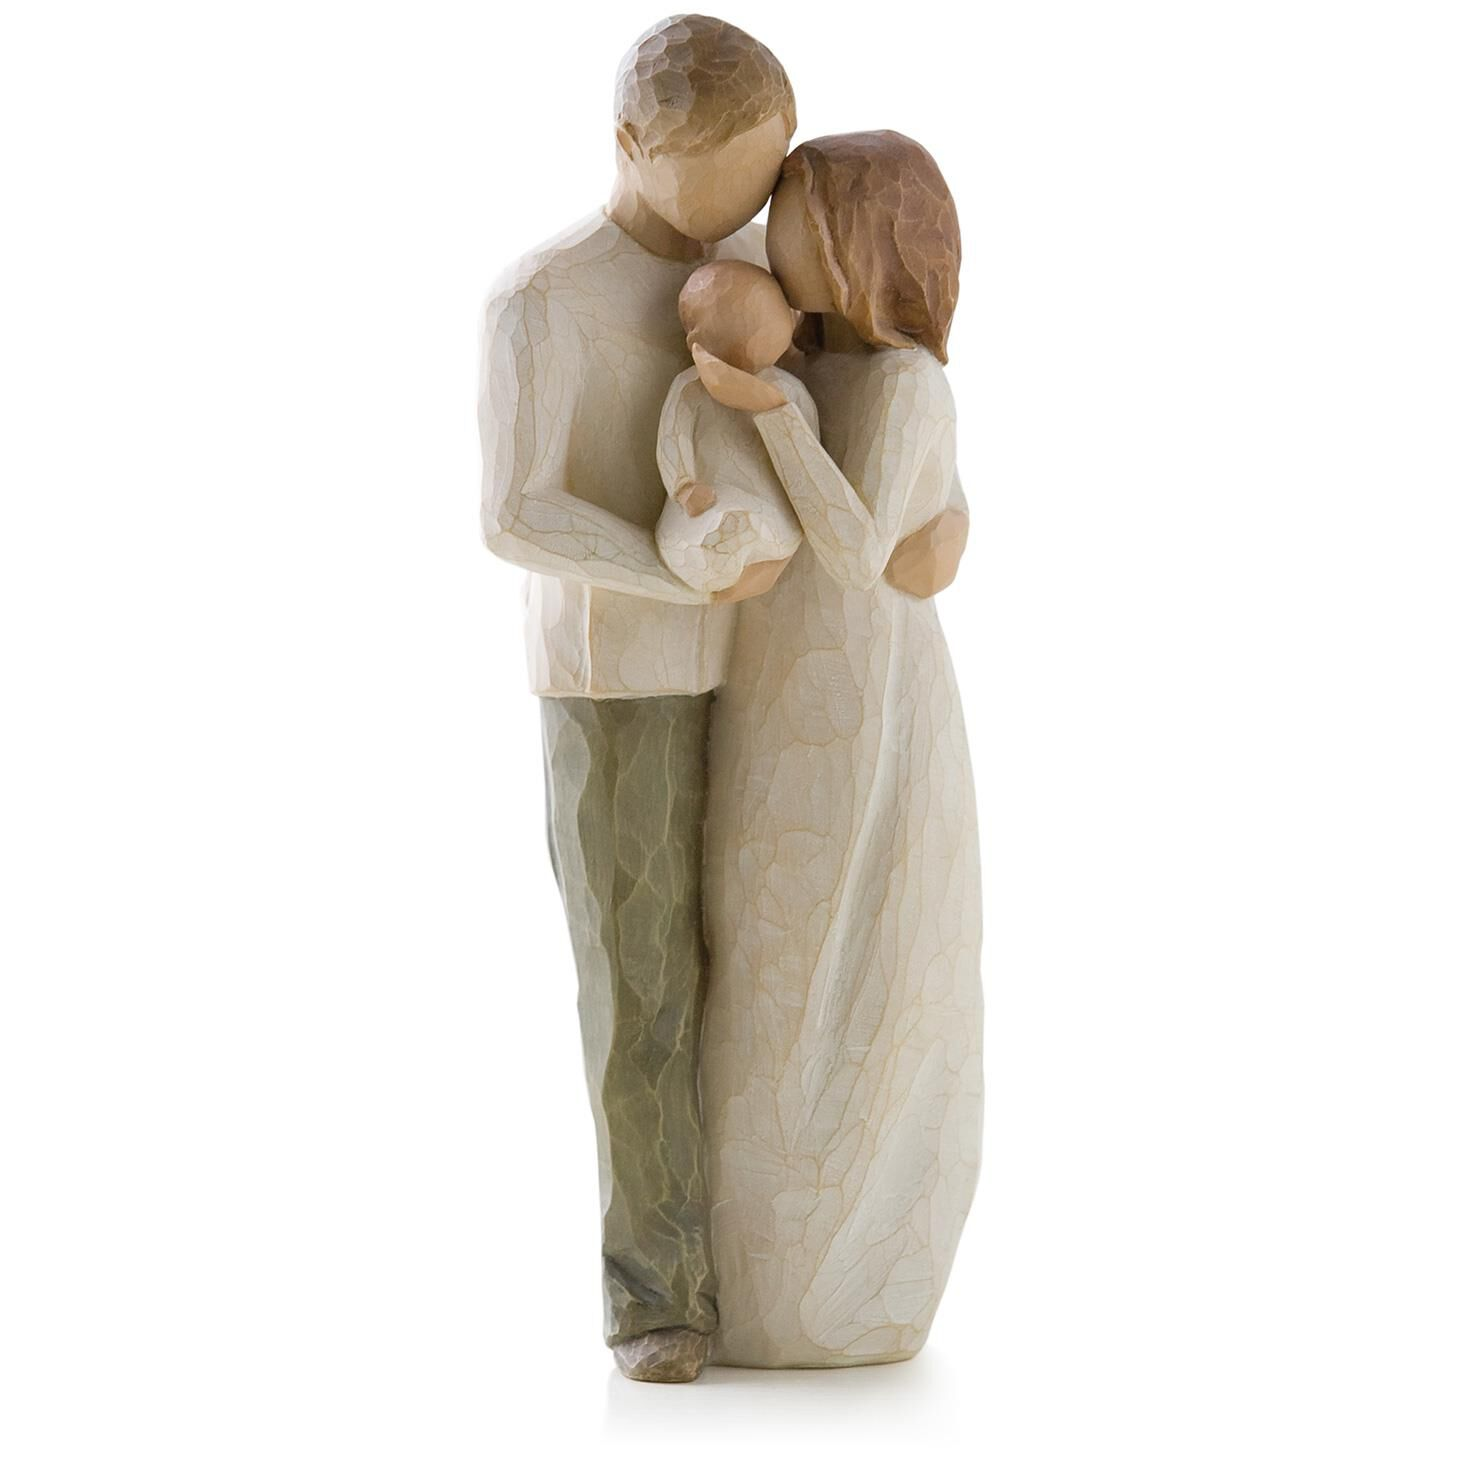 Willow Tree® Our Gift New Baby Figurine - Figurines - Hallmark